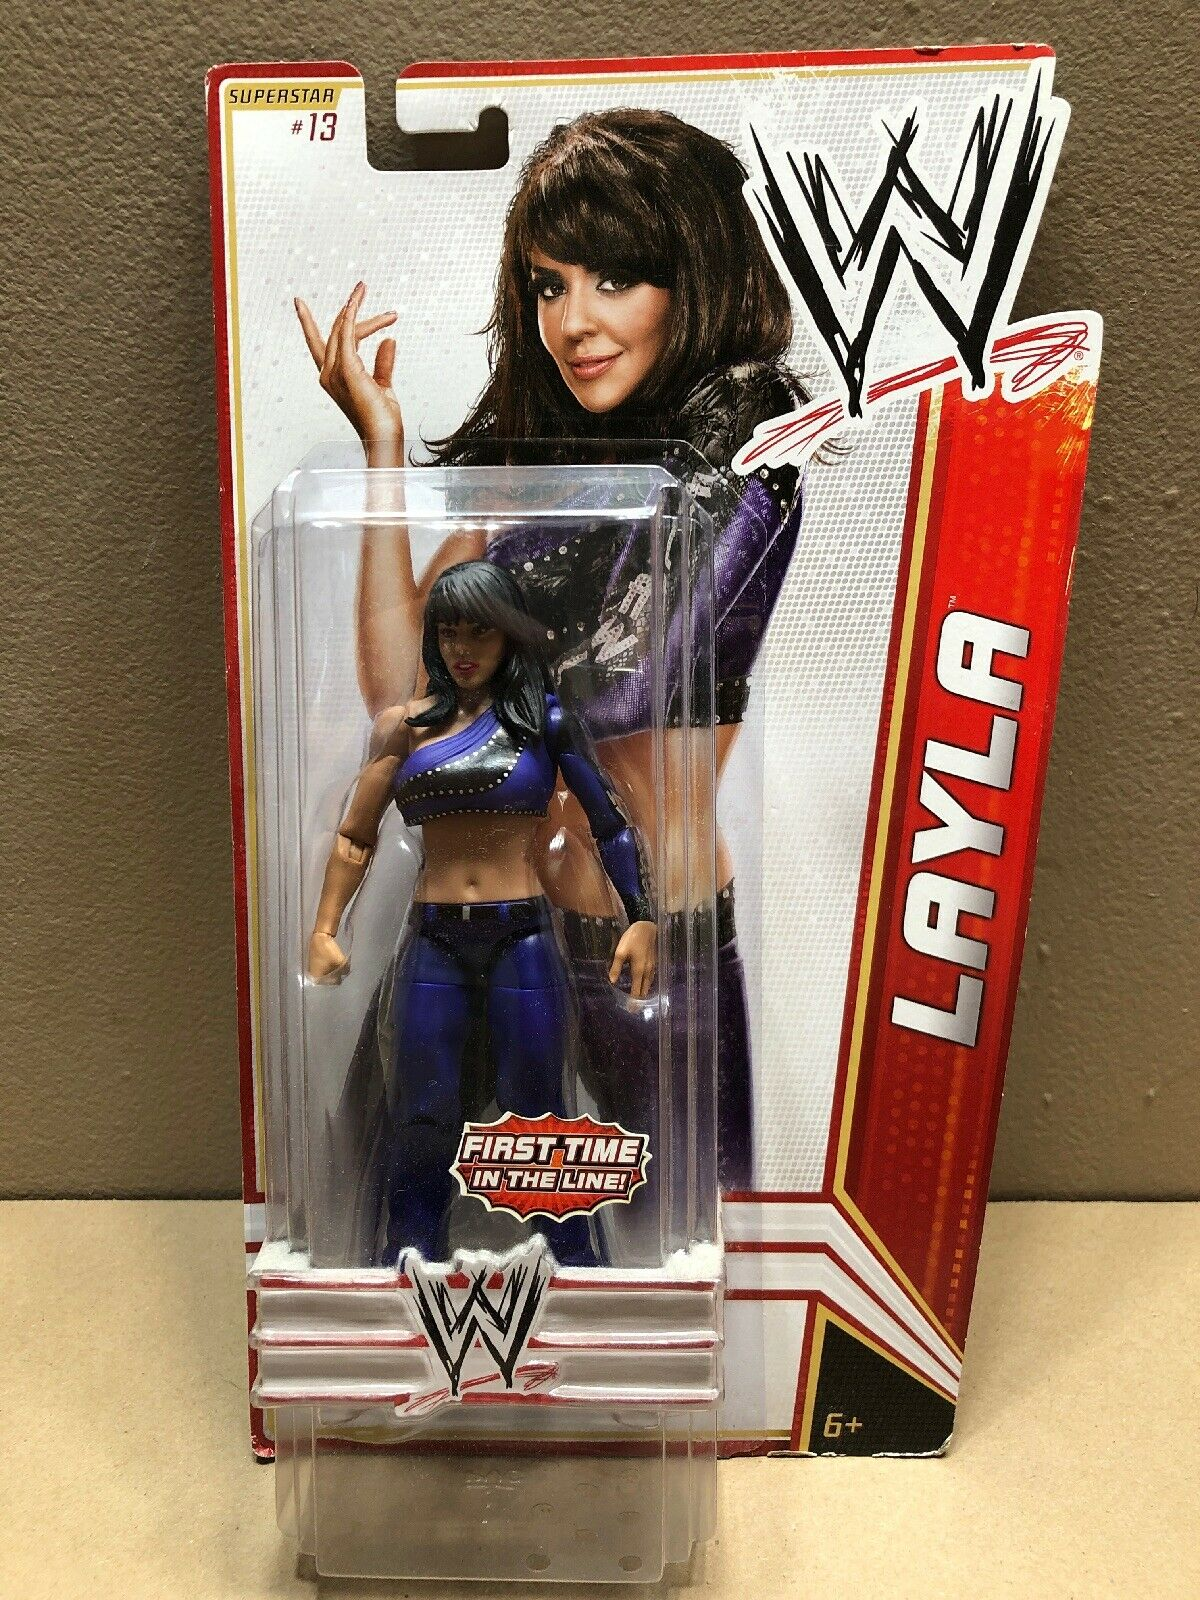 NEW 2011 WWE Diva LAYLA  Wrestler Figure First Time in the Line Mattel A20